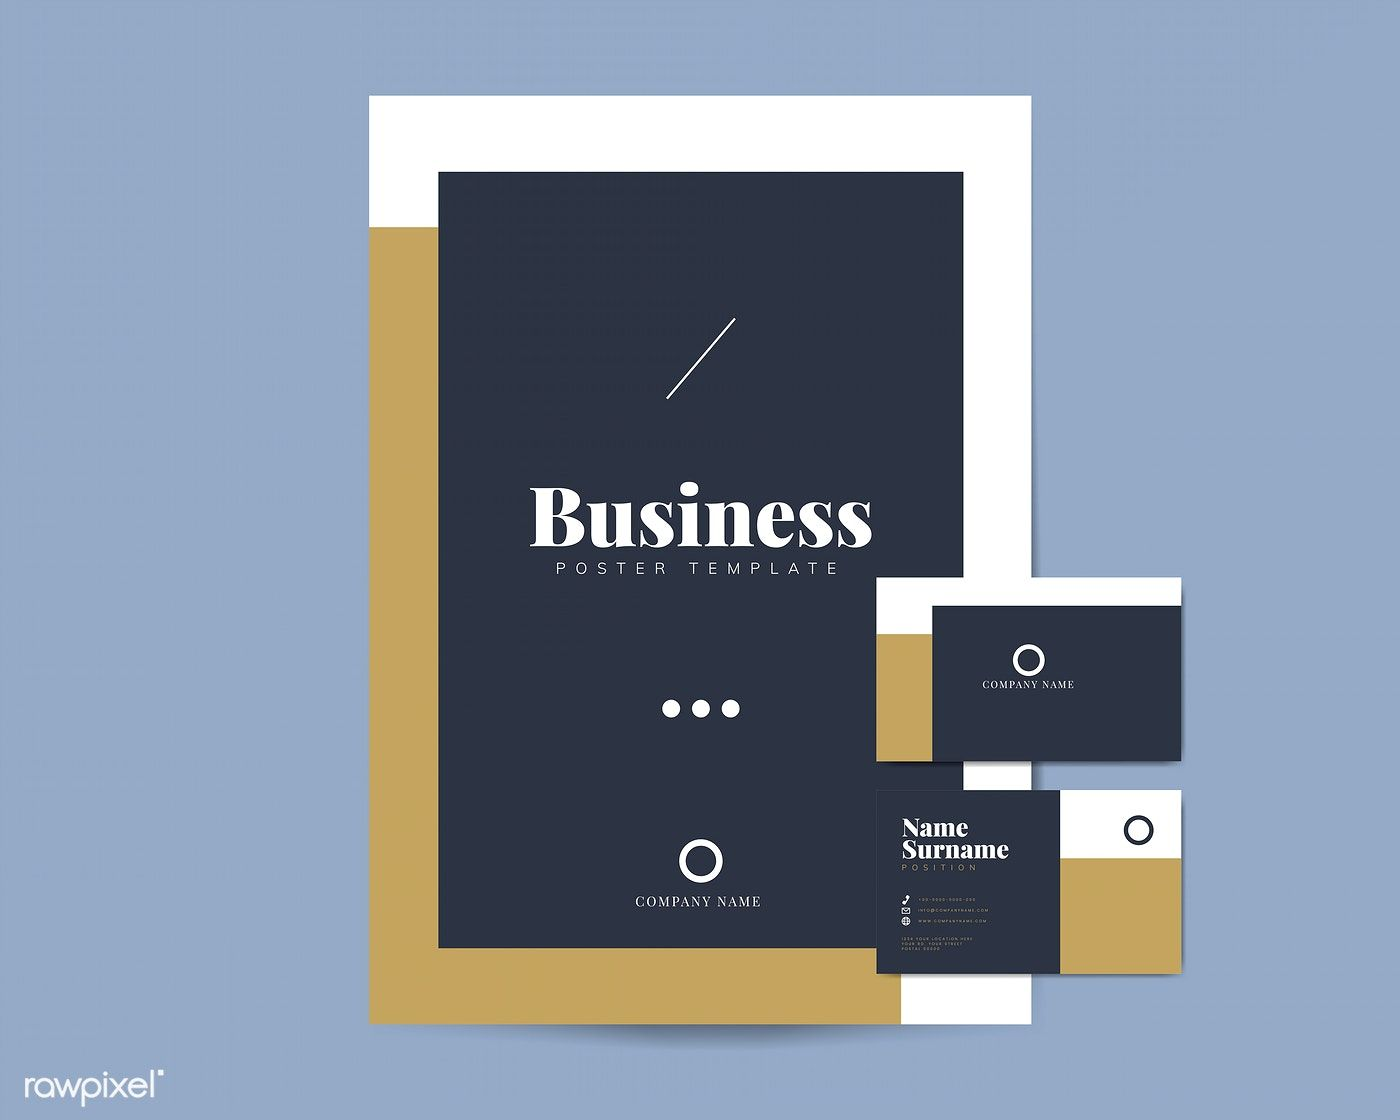 Corporate Flyer And Name Card Template Vectors Free Image By Rawpixel Com Tvz Free Business Card Templates Corporate Invitation Corporate Invitation Design